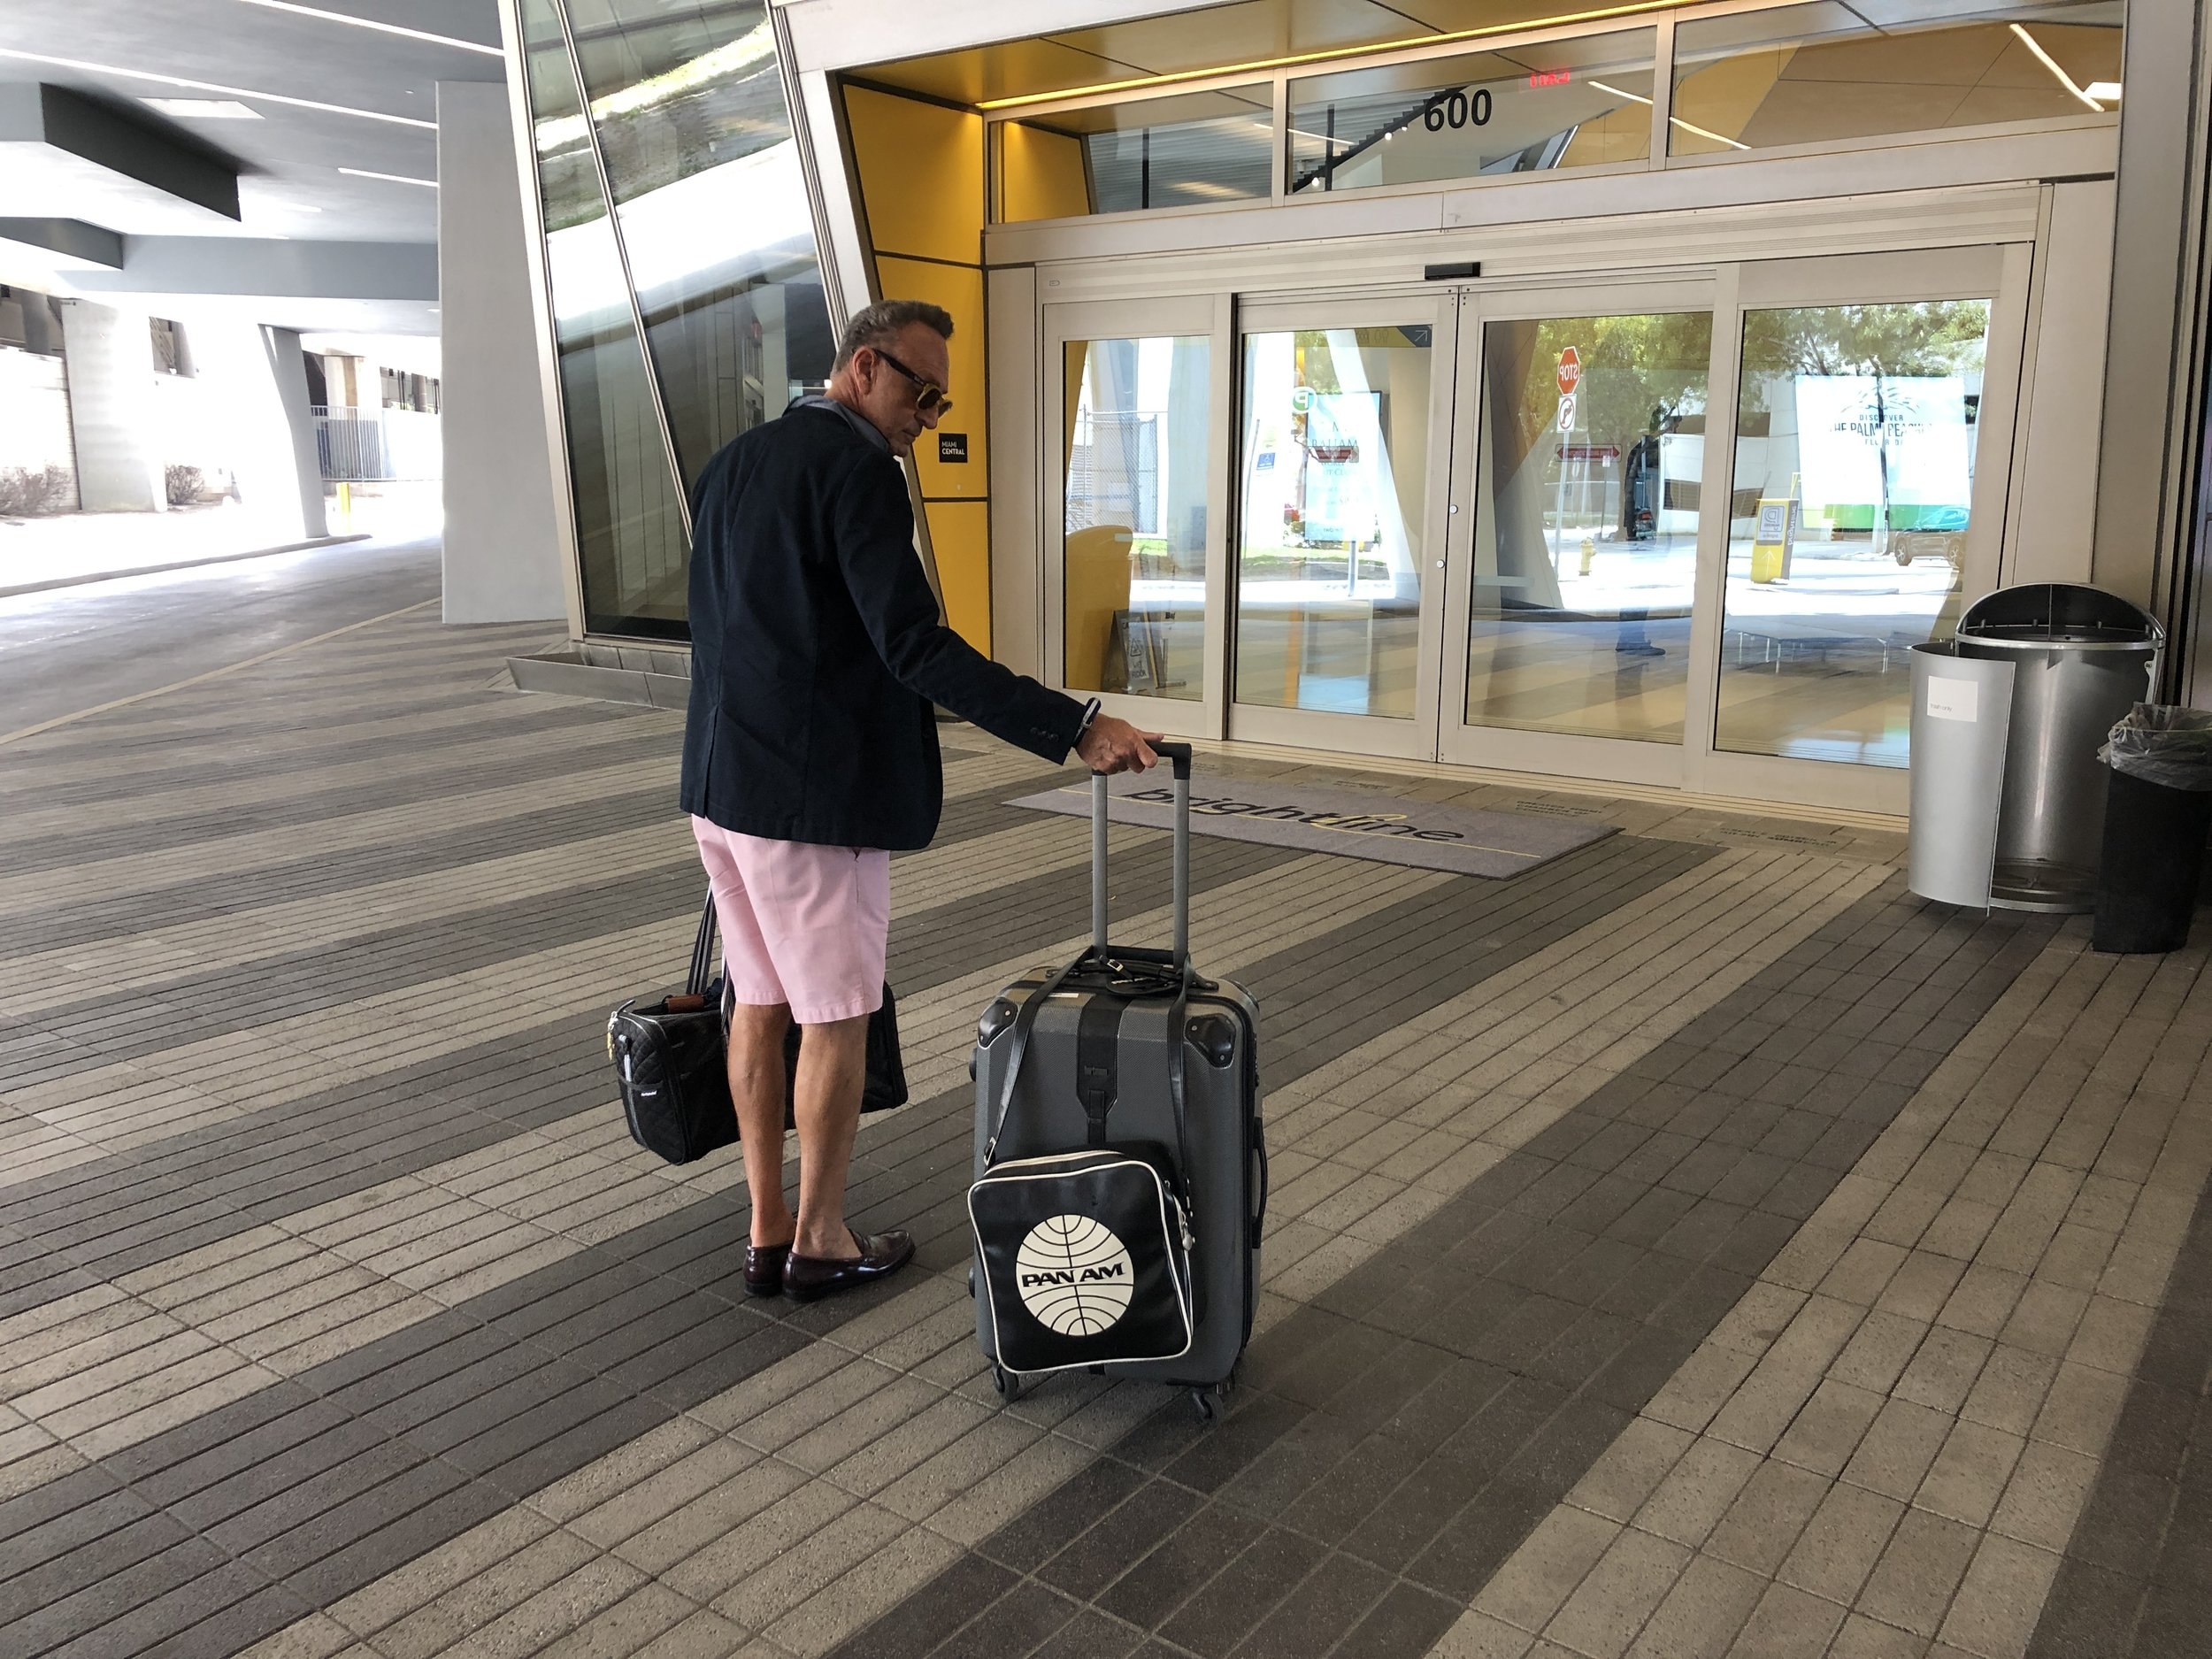 Stephen uses a roll aboard suitcase to easily transport catalogs and samples for day trip to his store in West Palm Beach.